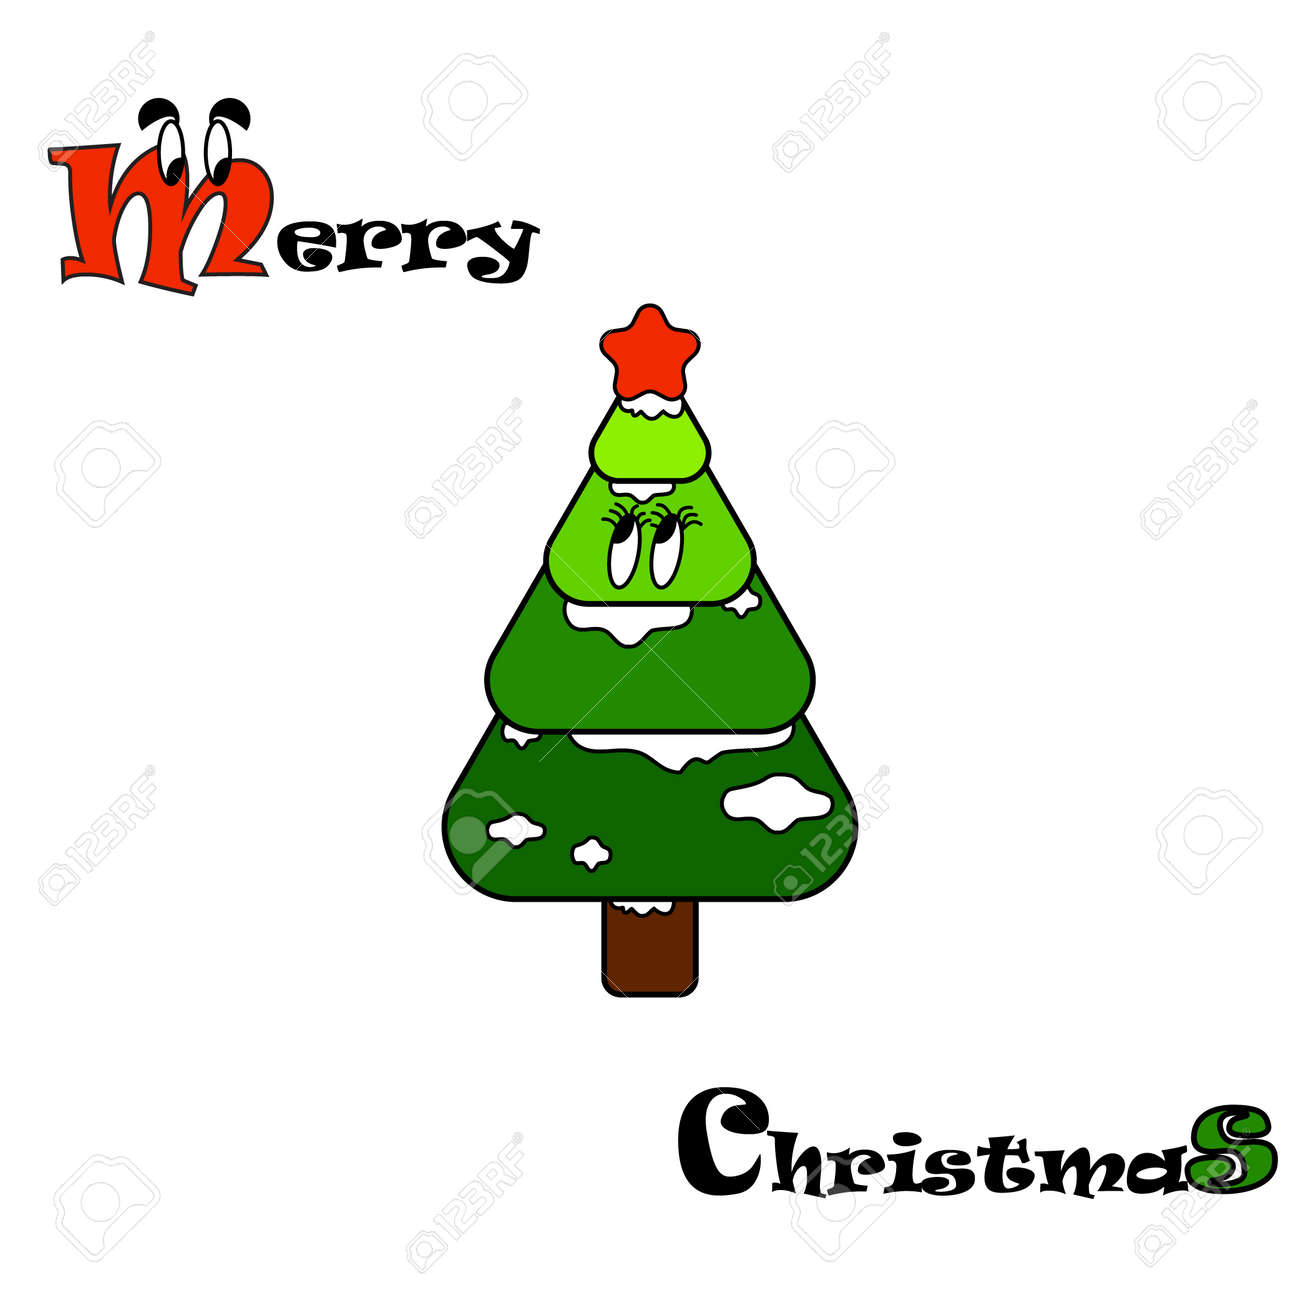 Doodle Christmas Holiday Design Vector Art Cute Pine Tree With Royalty Free Cliparts Vectors And Stock Illustration Image 127865486 Even if it is not real, but artificial or even virtual. doodle christmas holiday design vector art cute pine tree with